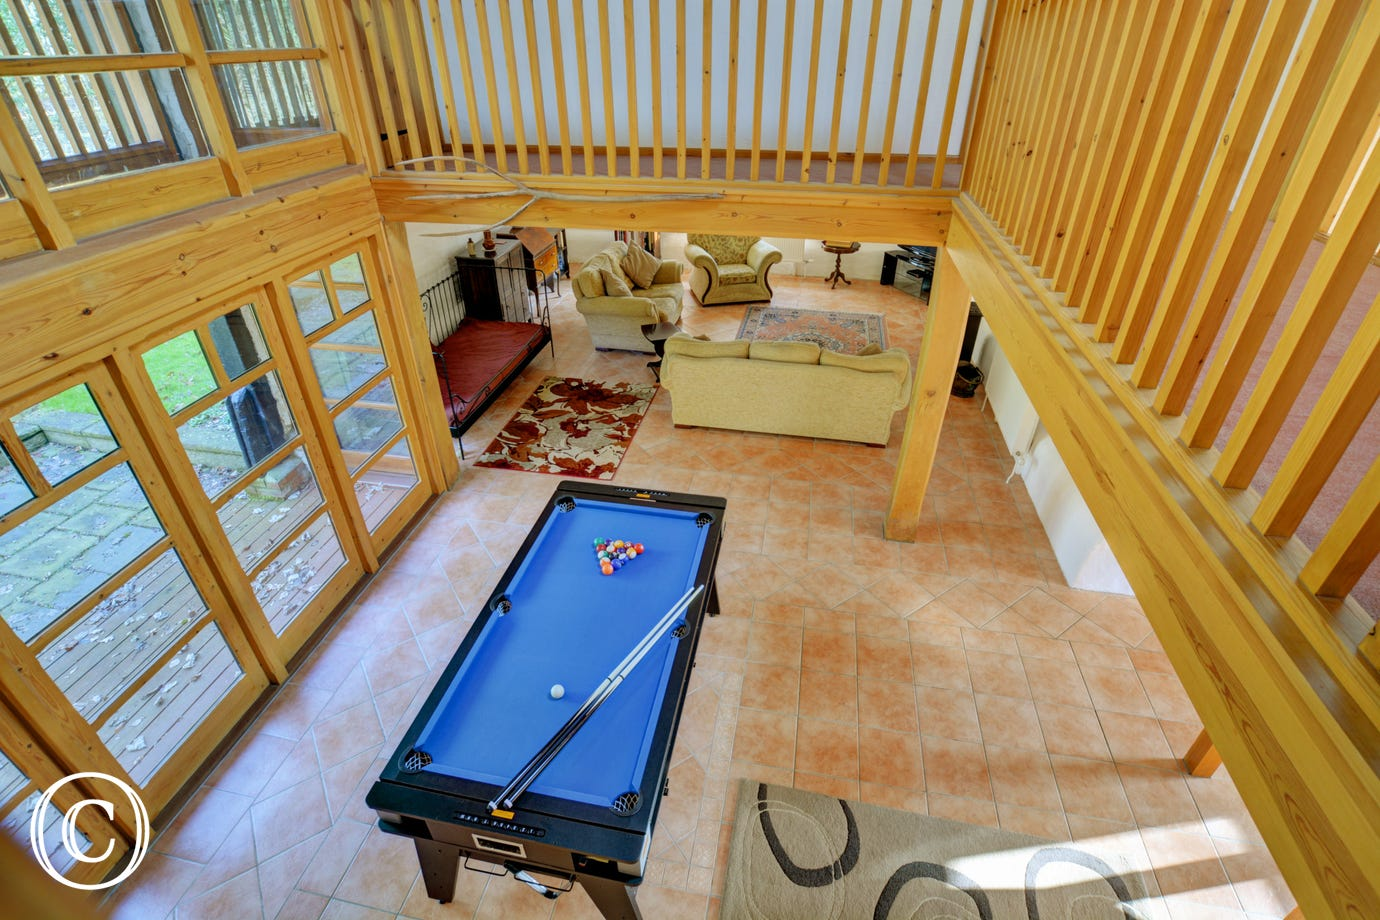 From the galleried landing you can look down to the pool table in the hall below